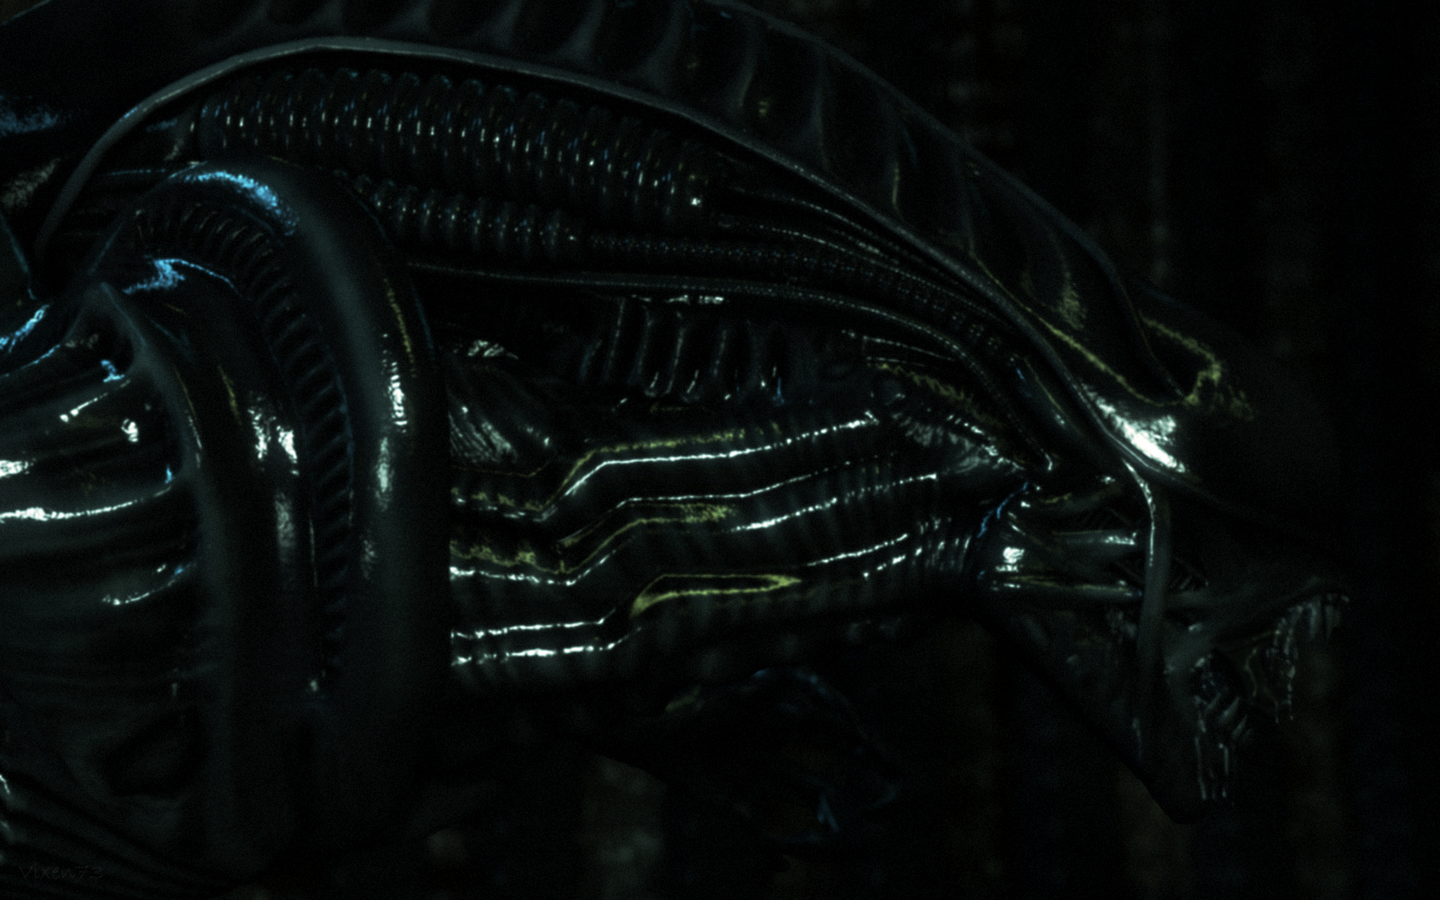 definition drone with File Xenomorph Desktop 1440x900 Hd Wallpaper 997764 on Apple C us 2 Spectacular New Drone Footage Shows Progress Spaceship Headquarters 1579735 in addition Fast Paced Move Or Die Multiplayer Game Hits Steam January 21 furthermore Les Questionnaires likewise walker Land Surveying in addition File Xenomorph desktop 1440x900 hd Wallpaper 997764.